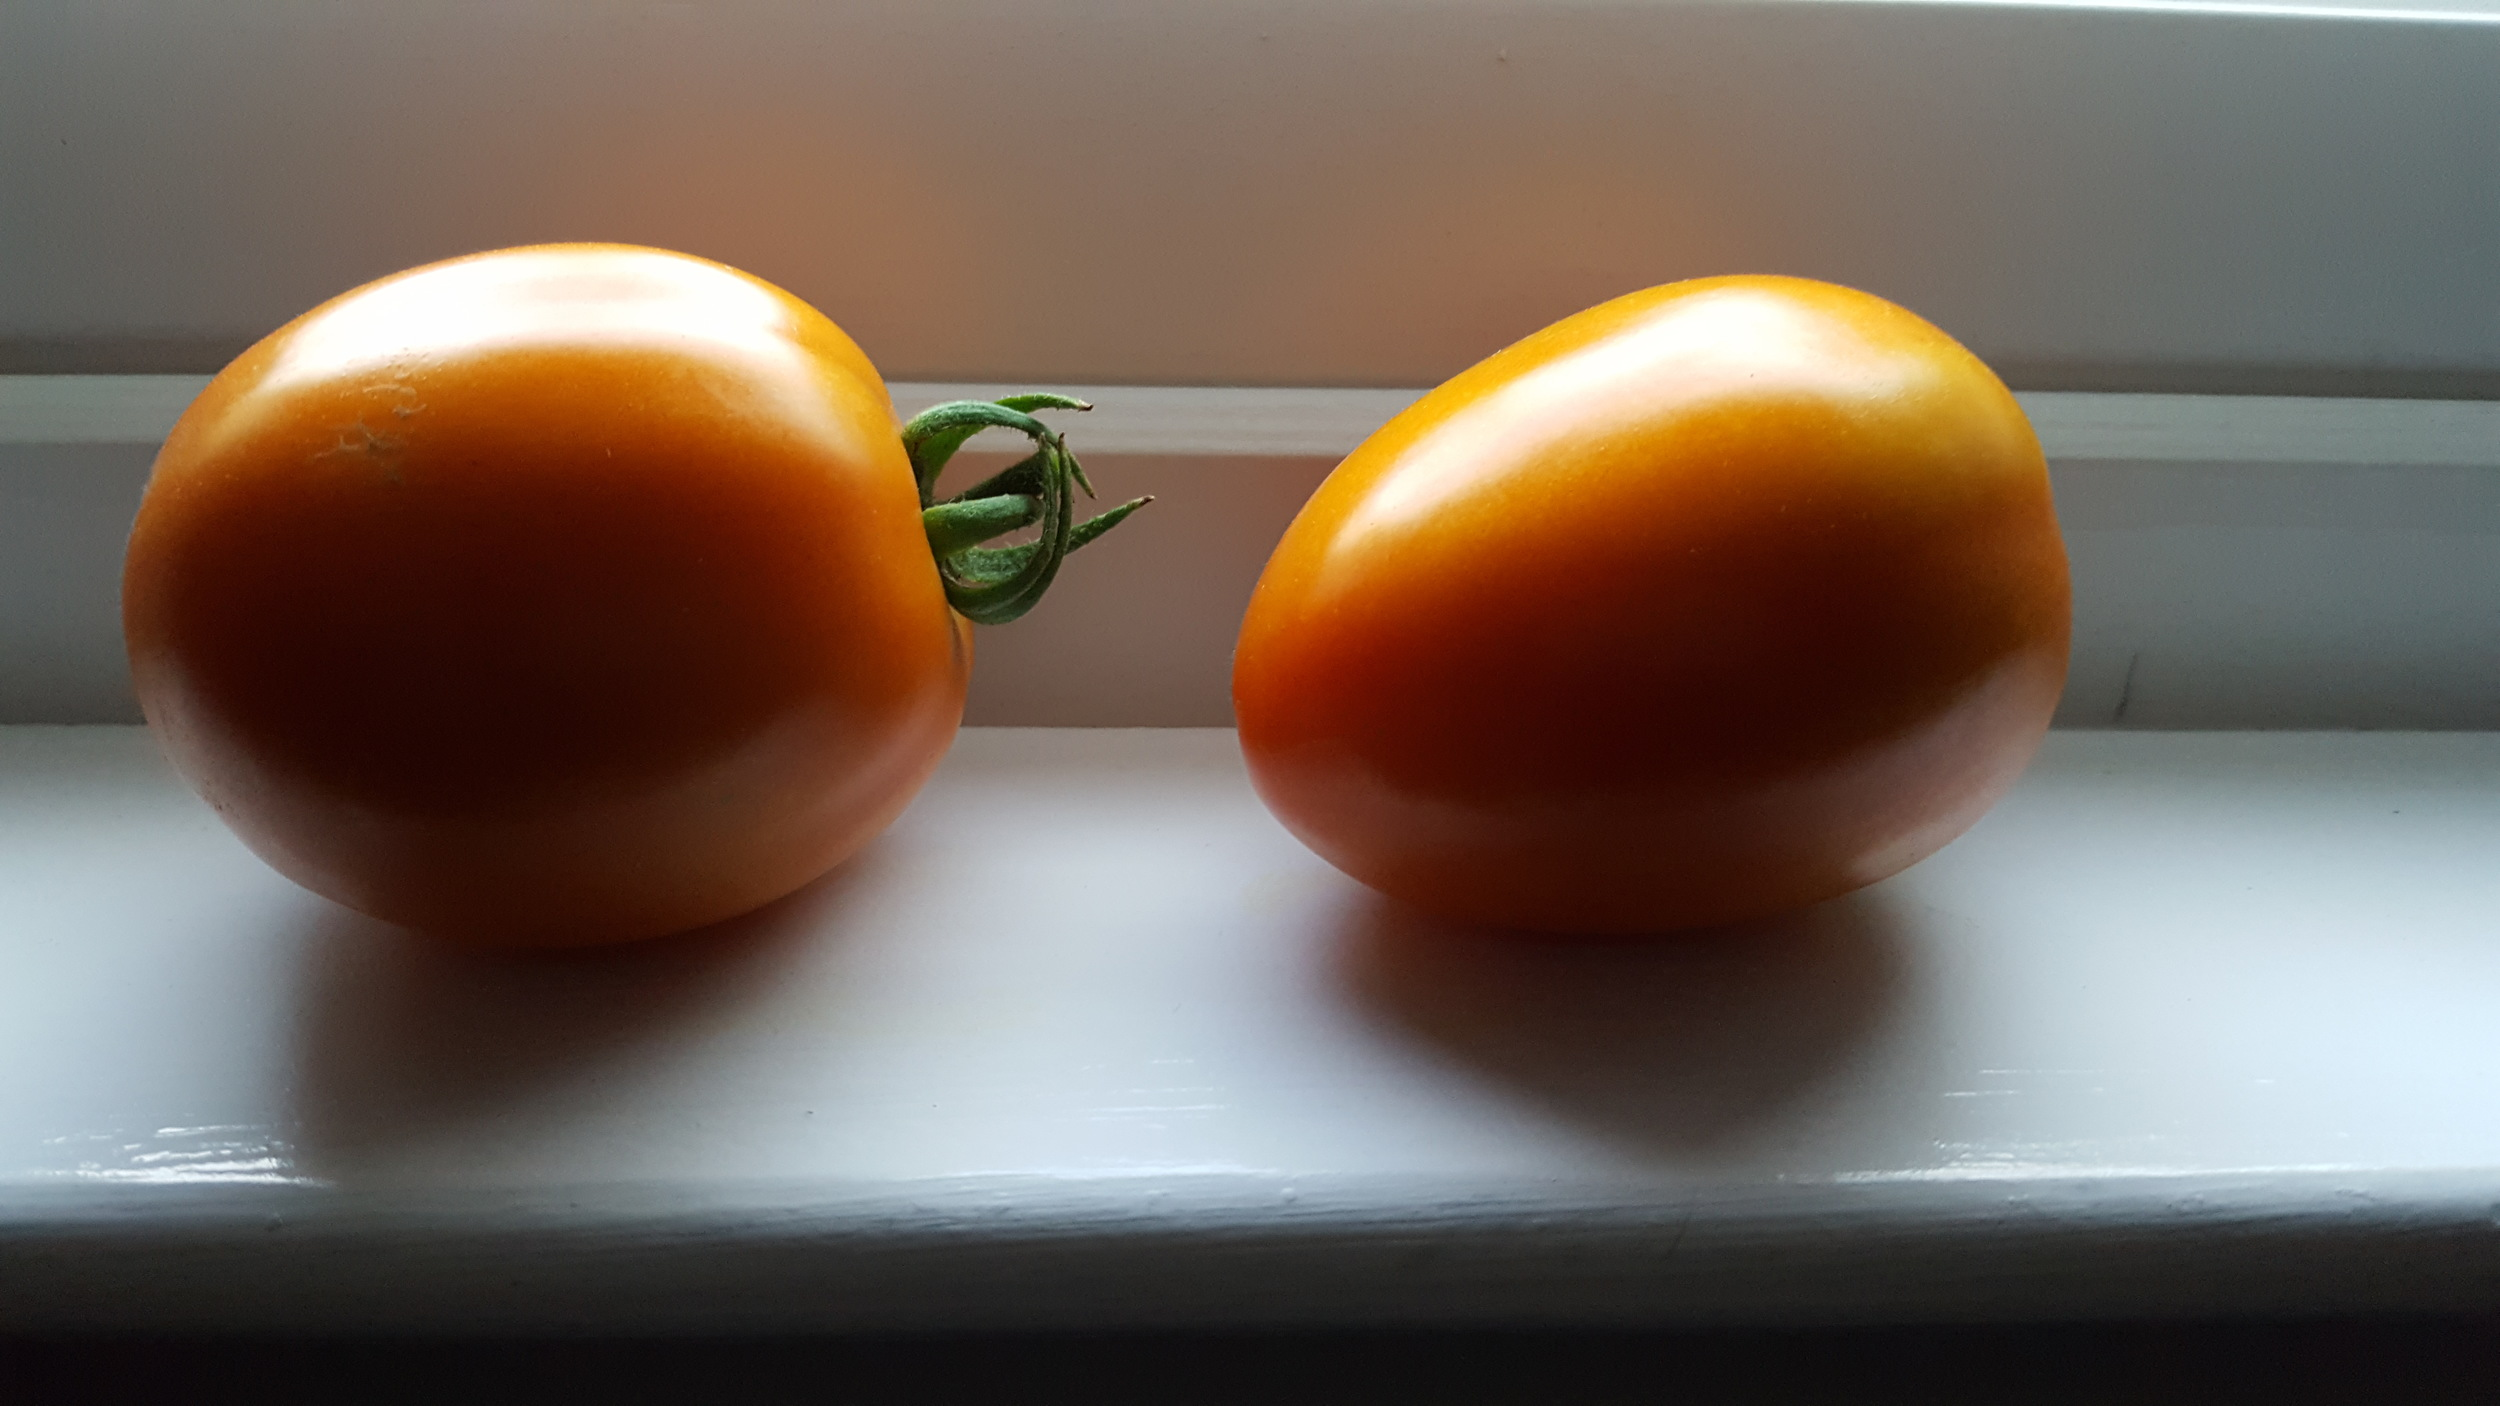 My two ripening Monica tomatoes